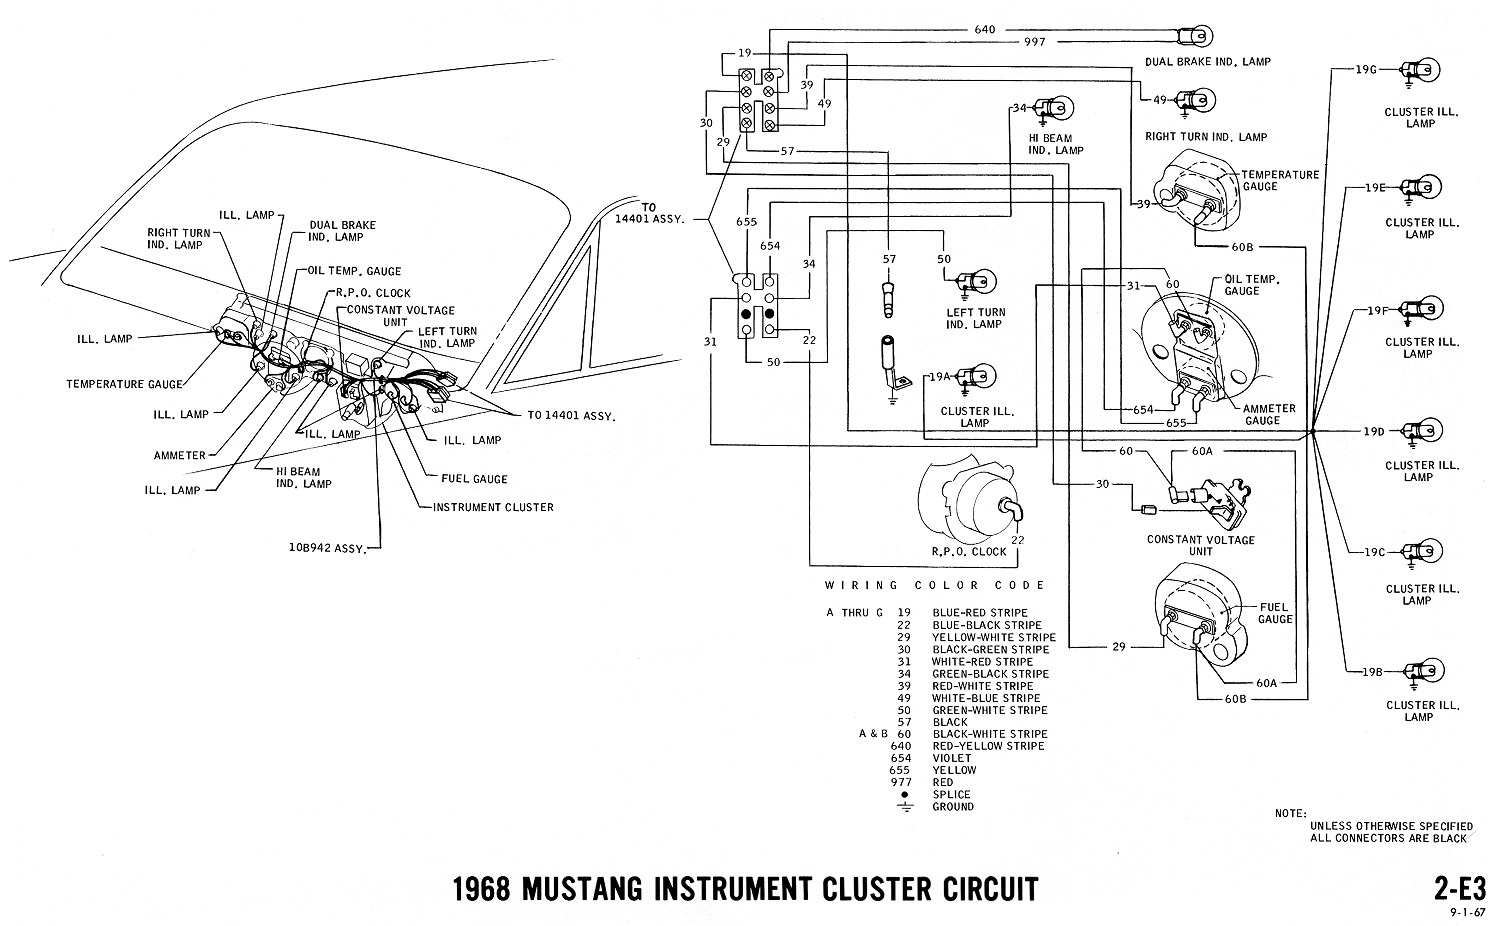 1968 mustang wiring diagram instruments 1968 mustang wiring diagrams and vacuum schematics average joe e3 plus relay wiring diagram at edmiracle.co